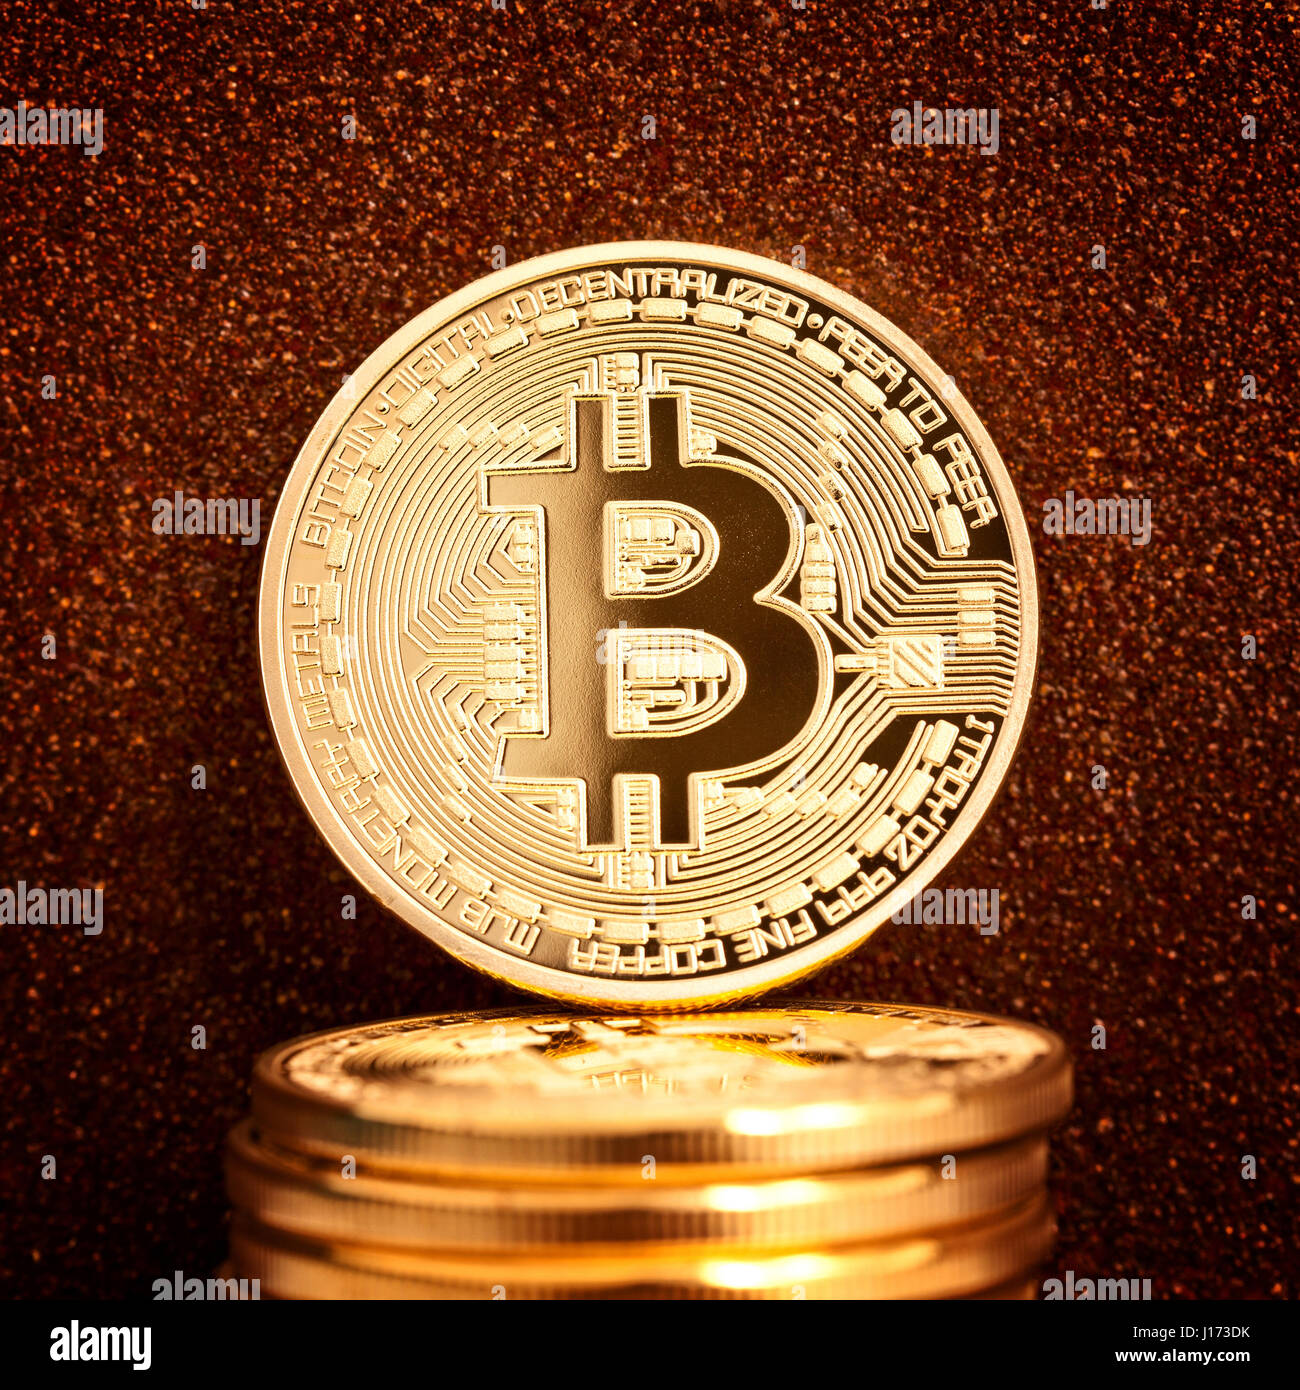 bit-coin coin and rusty metal background - Stock Image